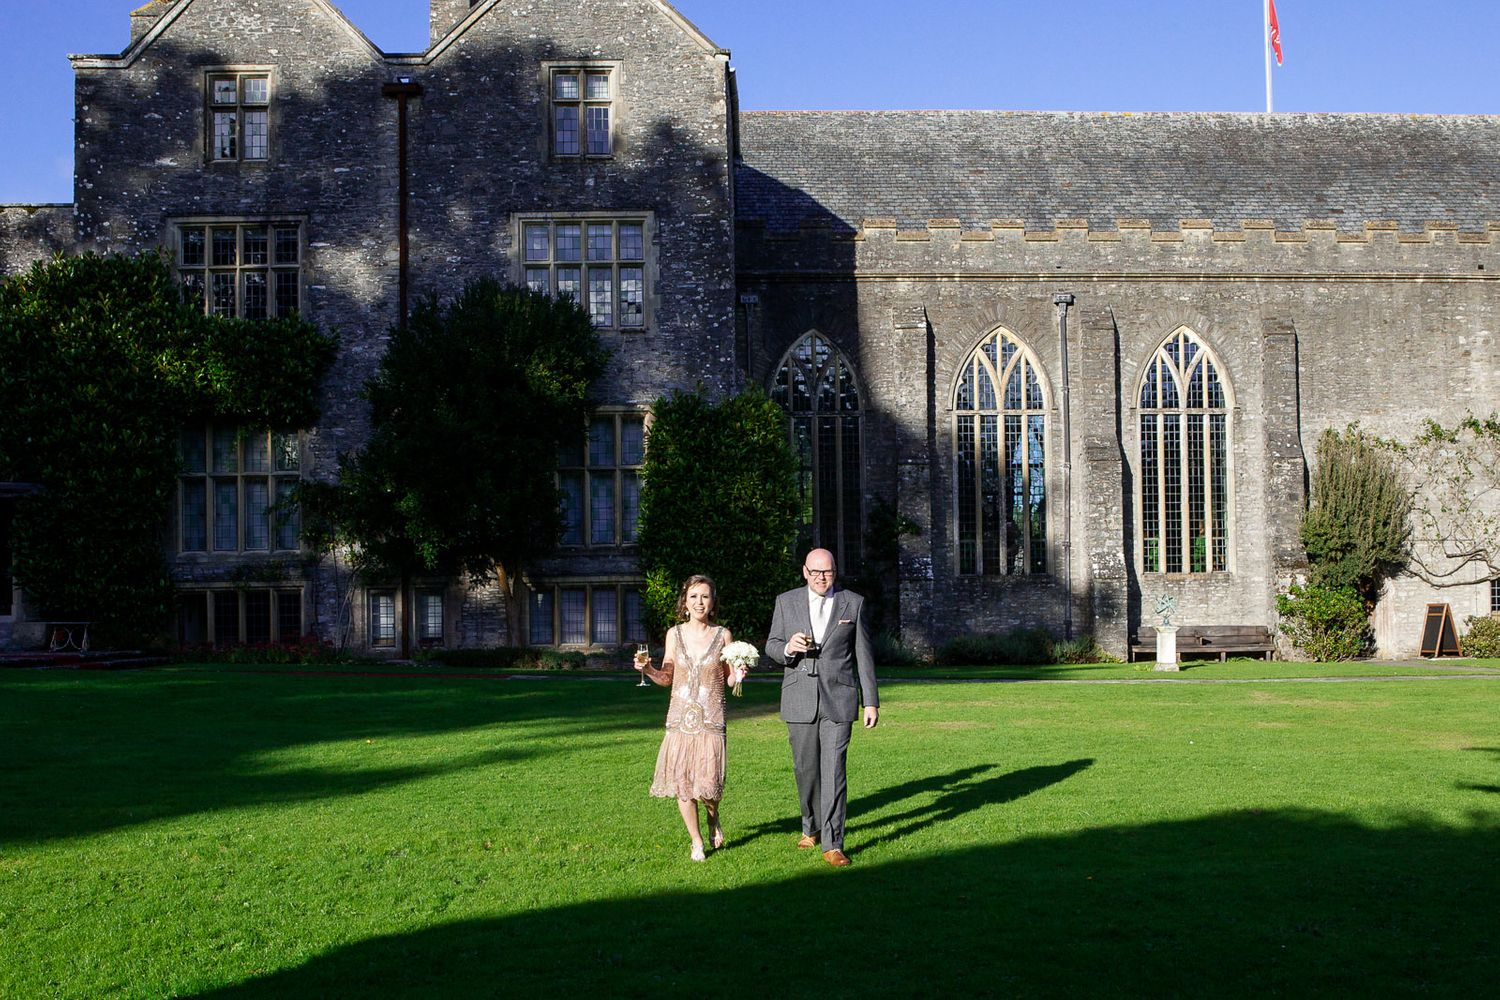 Dartington Hall vintage wedding by destination wedding photographer Elizabeth Armitage